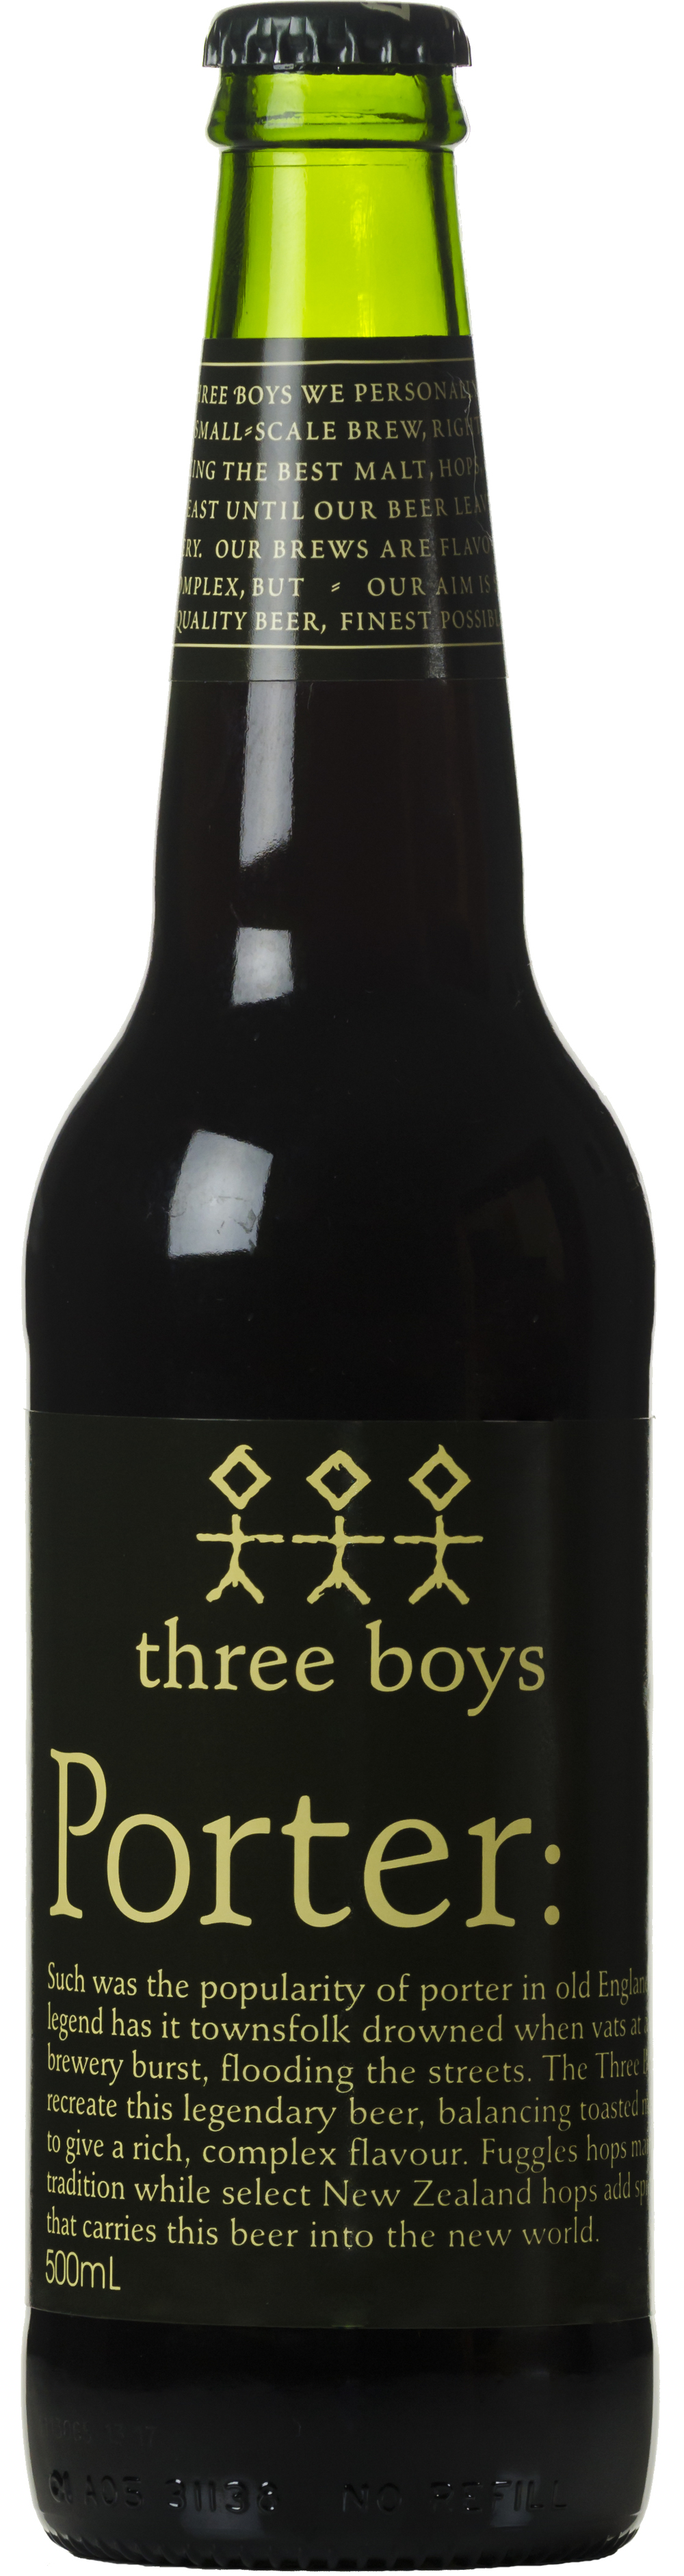 Porter bottle JPG - no shadow.jpg